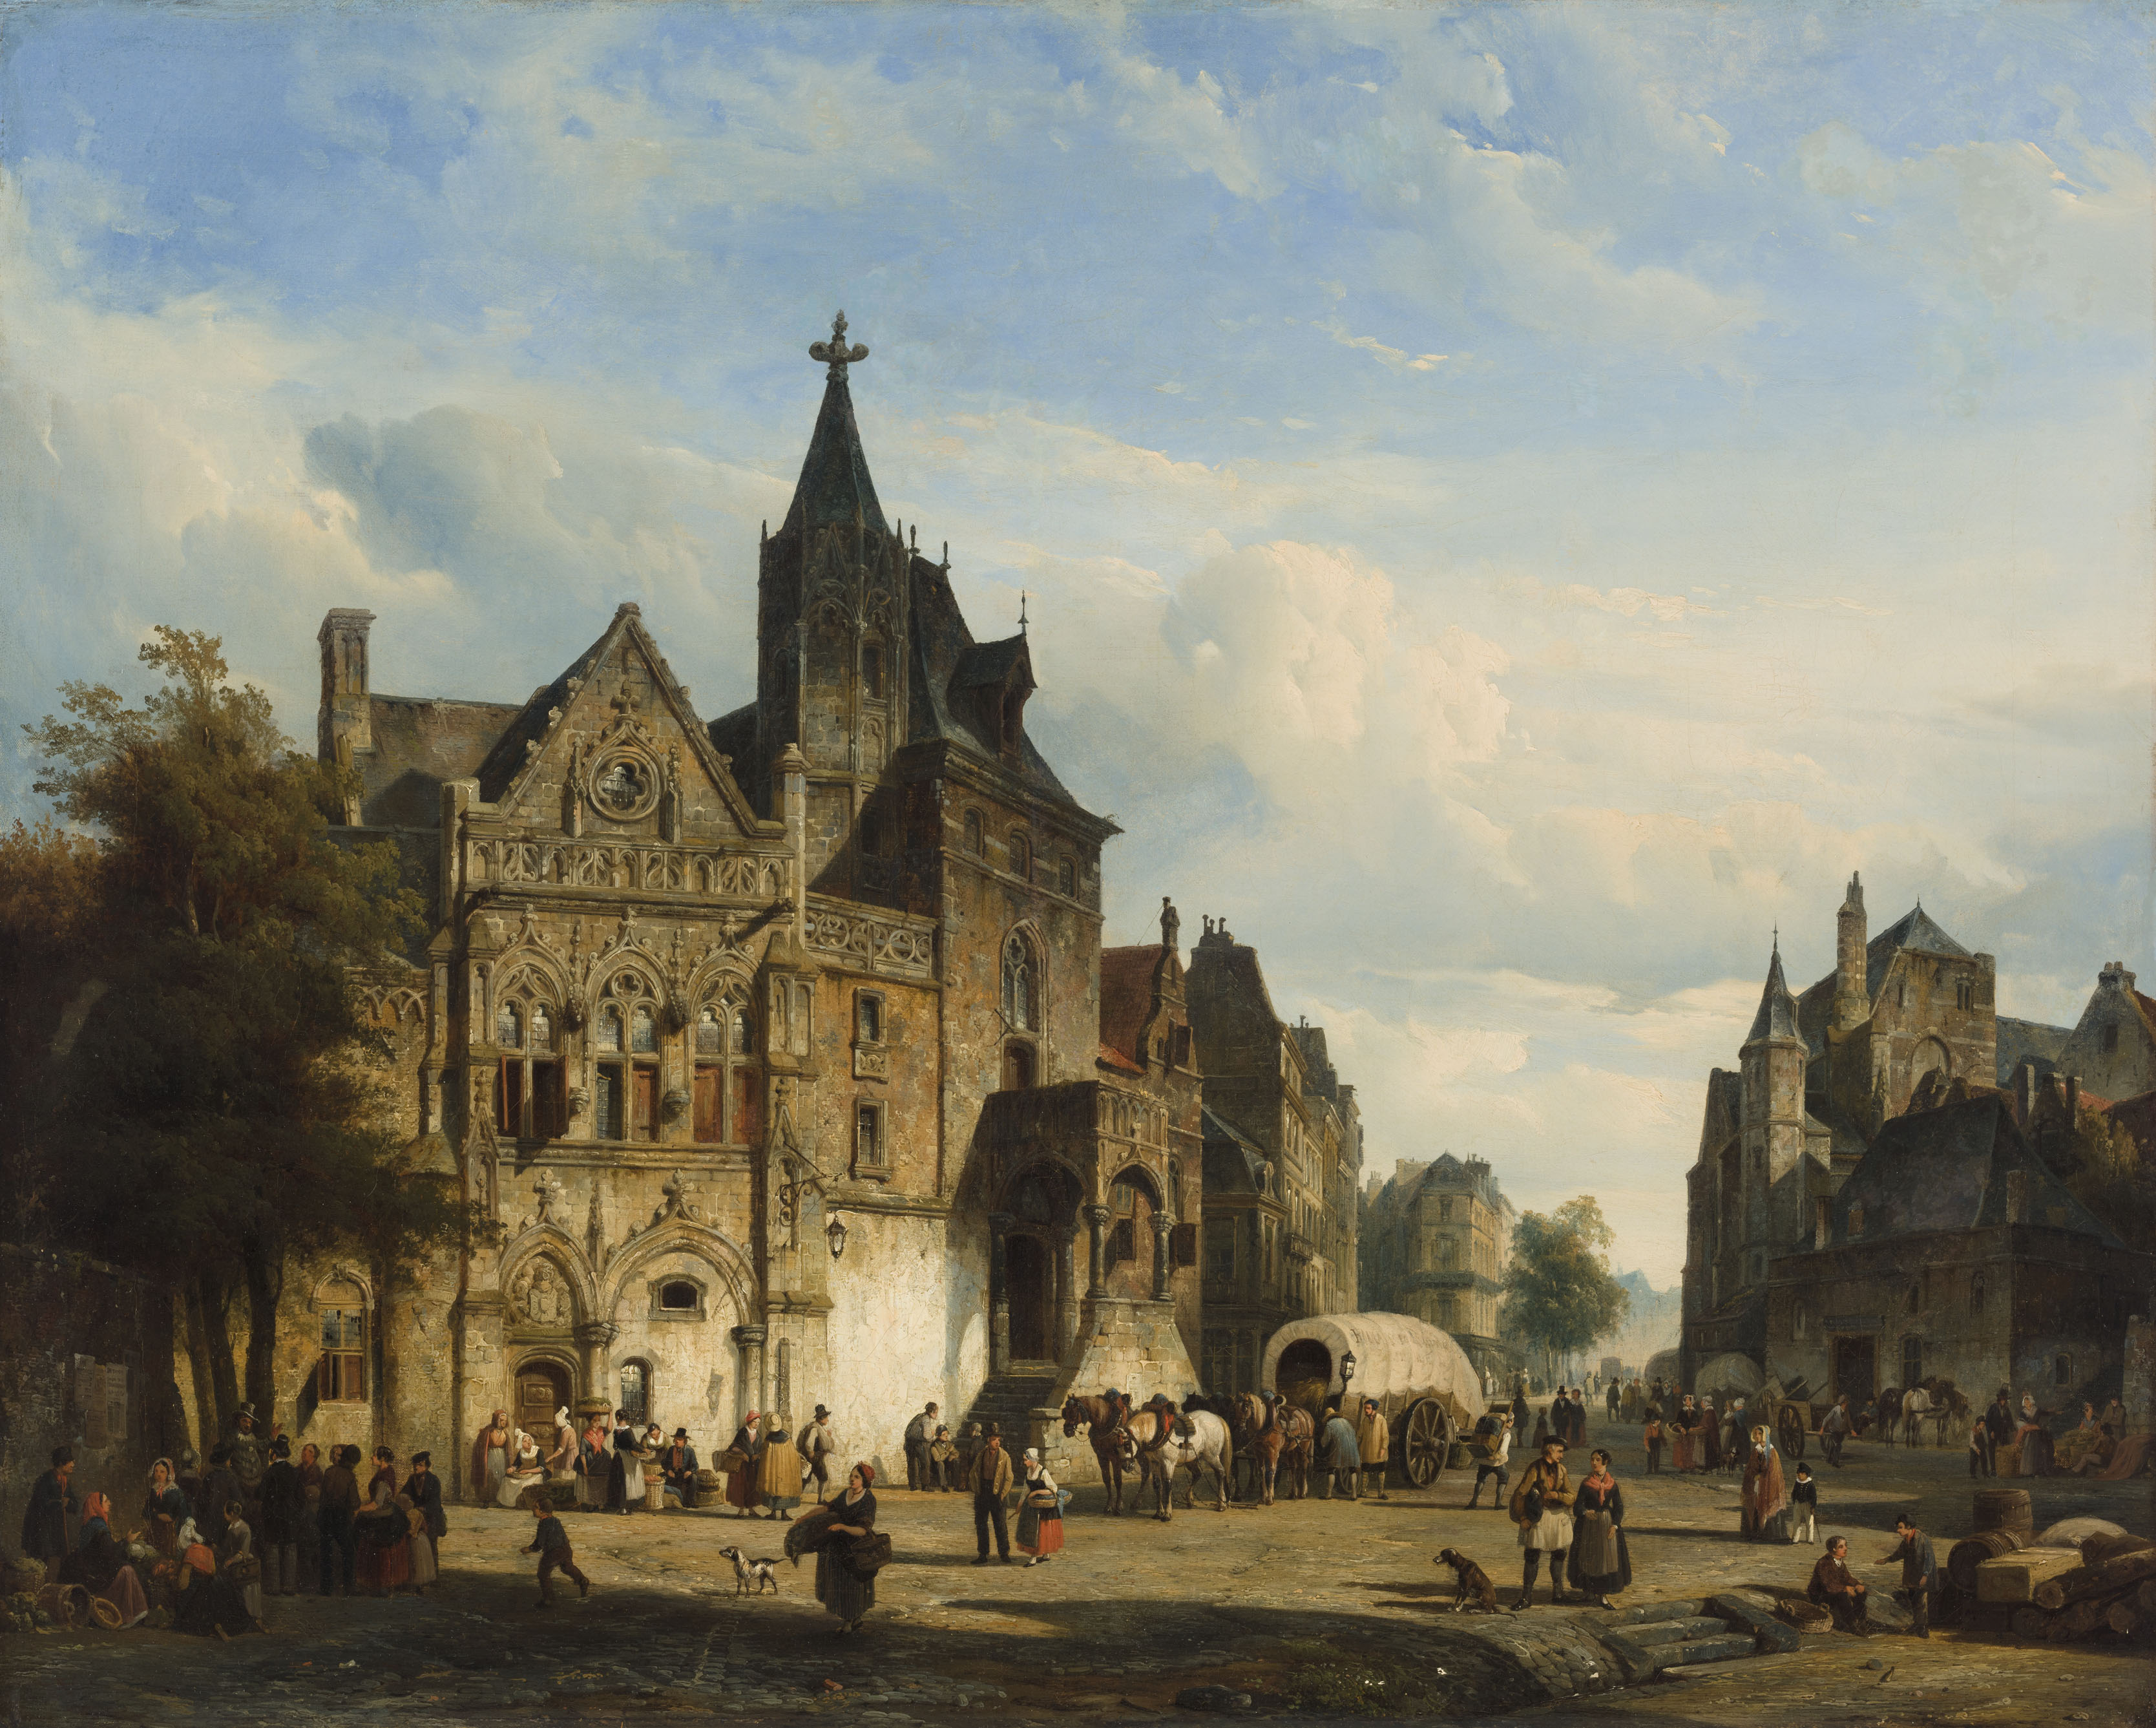 Cornelis Springer | A town view with a market and a Gothic church | Kunsthandel Bies | Bies Gallery